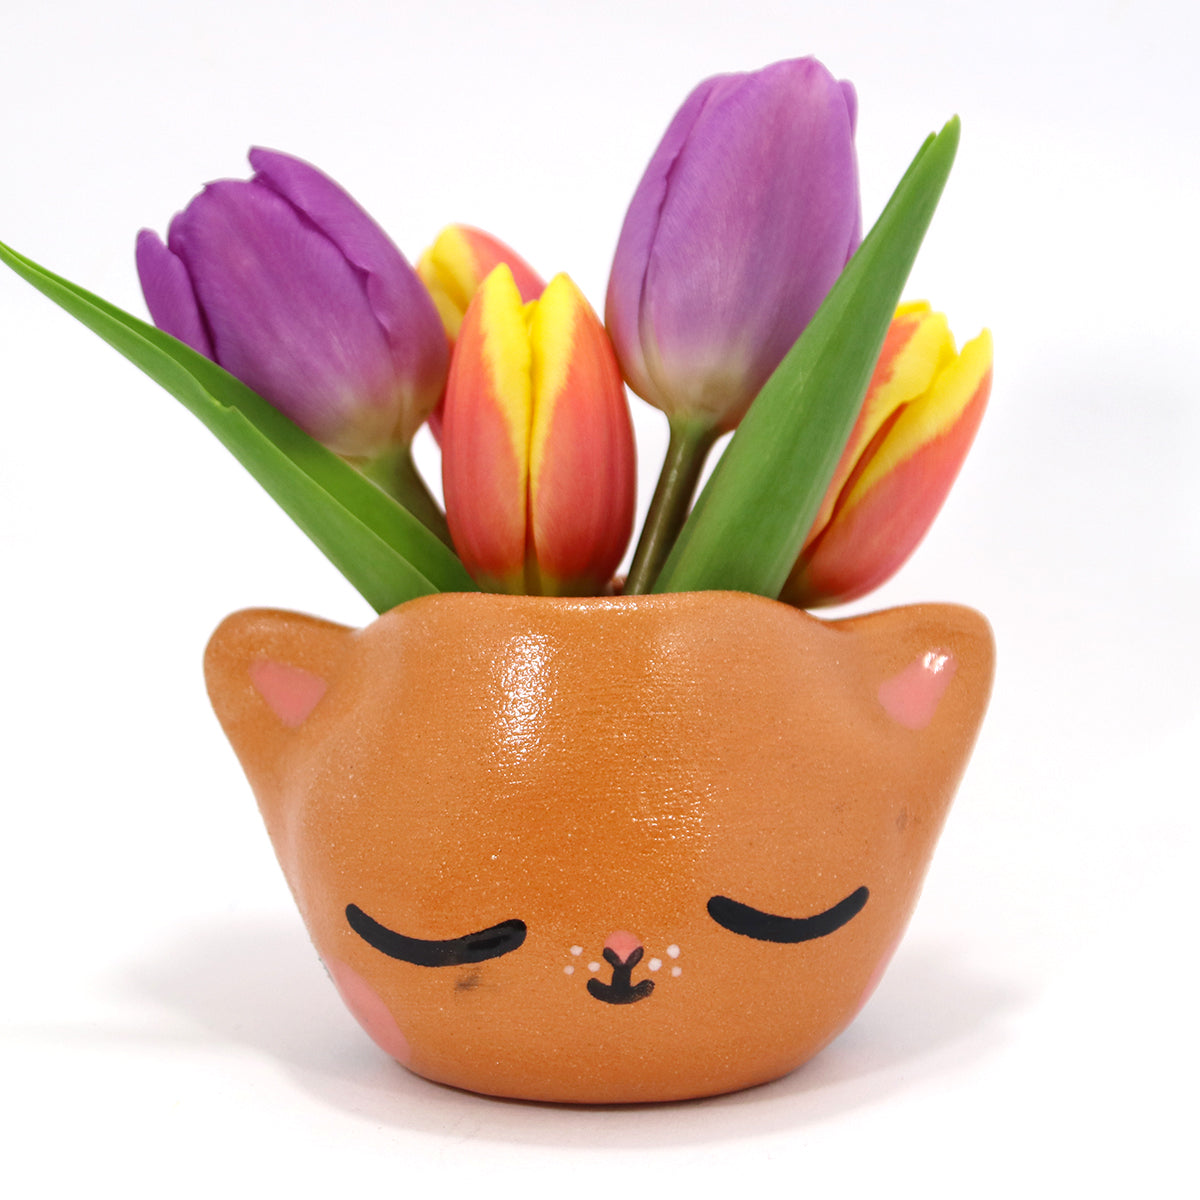 Ceramic Kitty Planter #1434 - XS